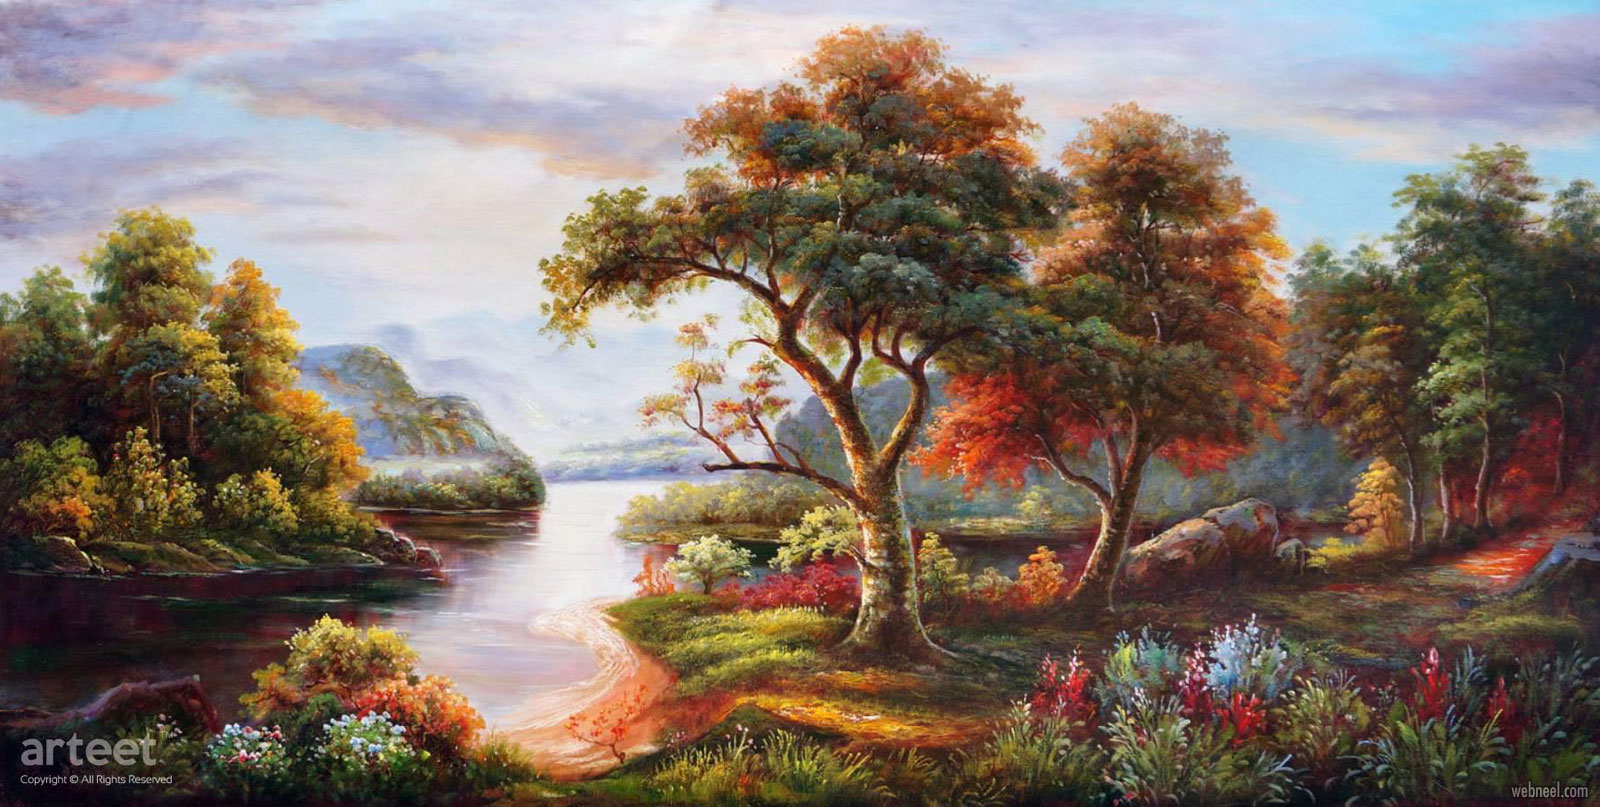 landscape artwork oil painting scenery